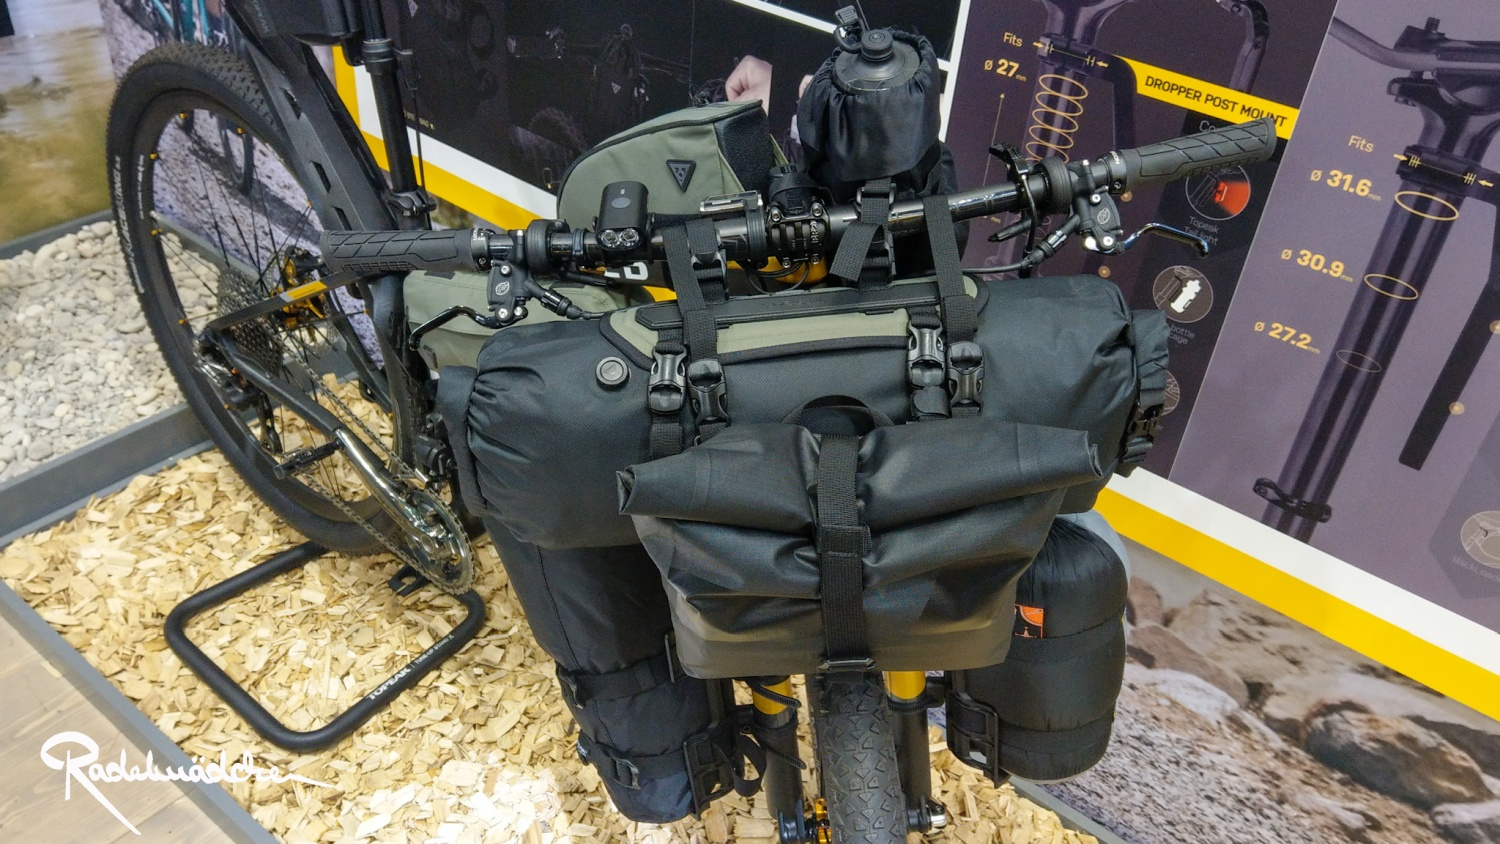 Topeak Bikepacking Bag,Eurobike 2019